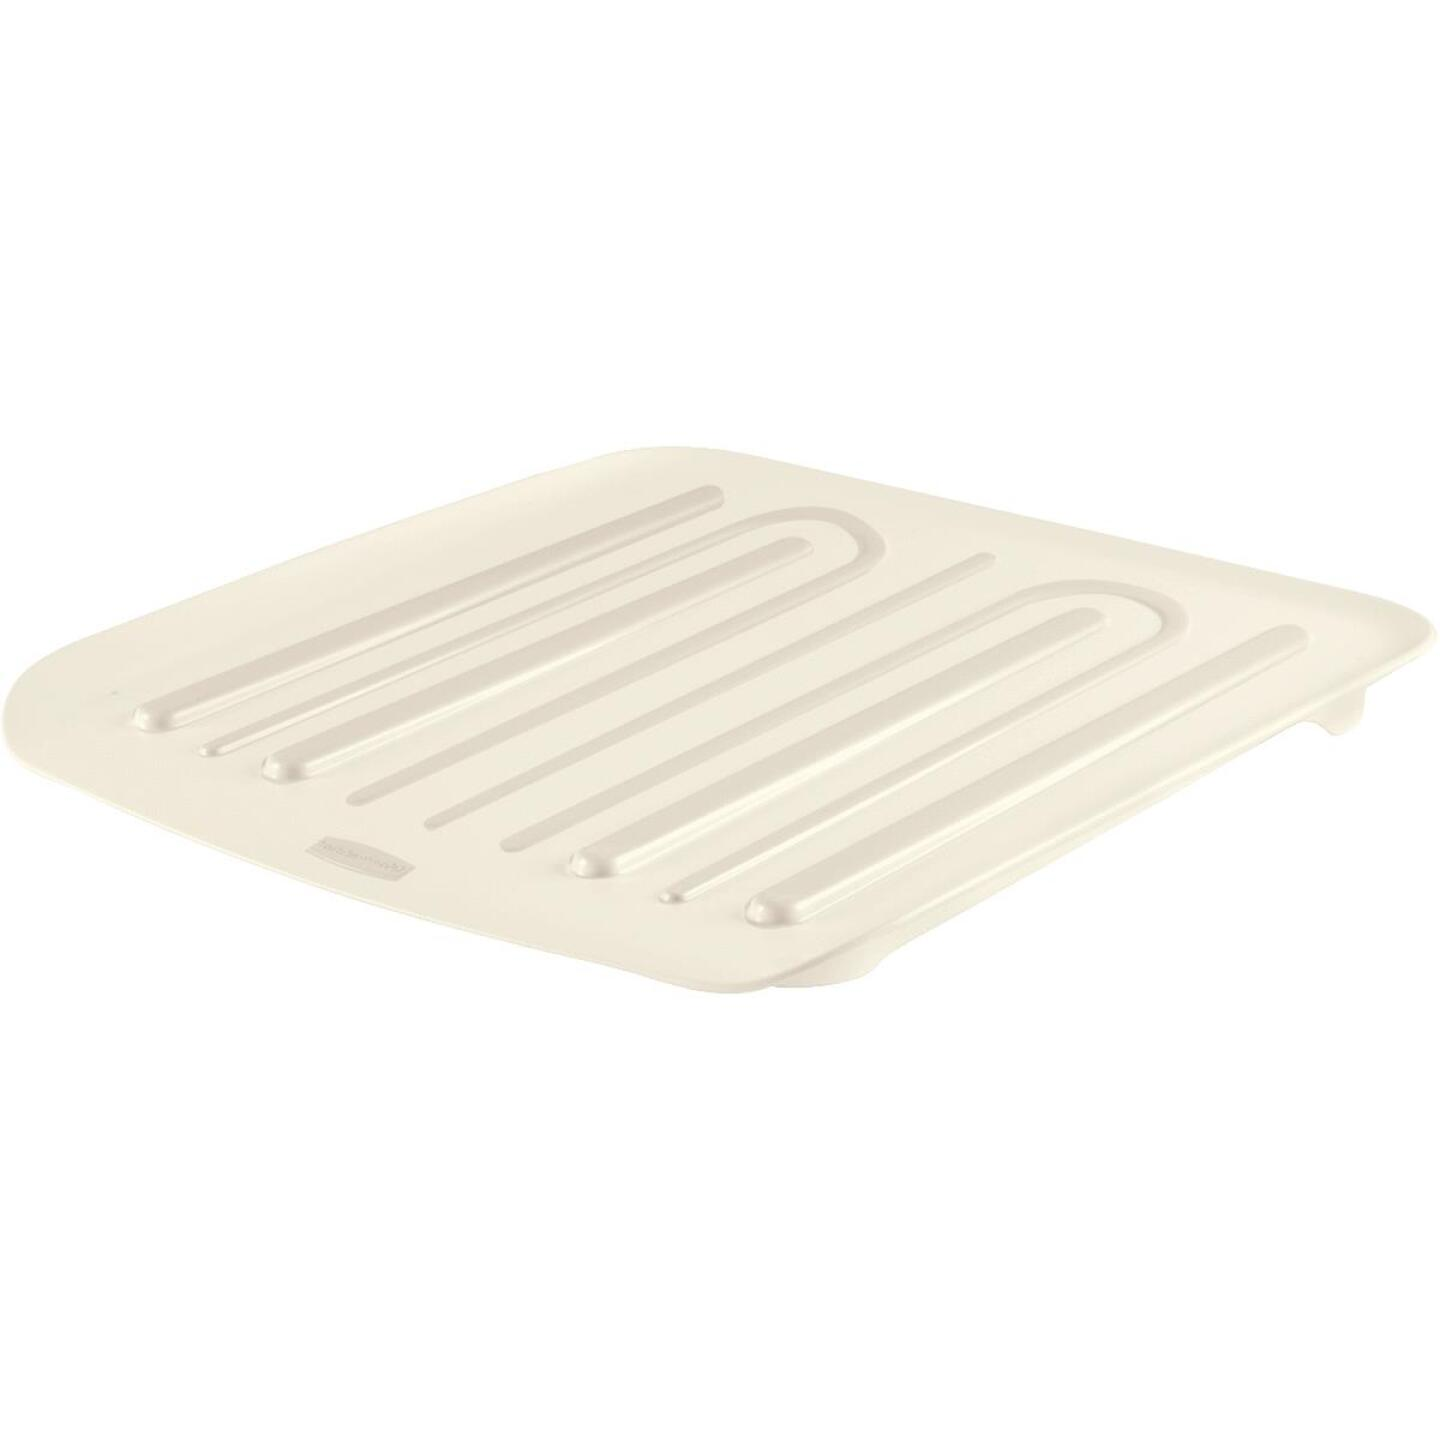 Rubbermaid 14.38 In. x 15.38 In. Bisque Sloped Drainer Tray Image 3